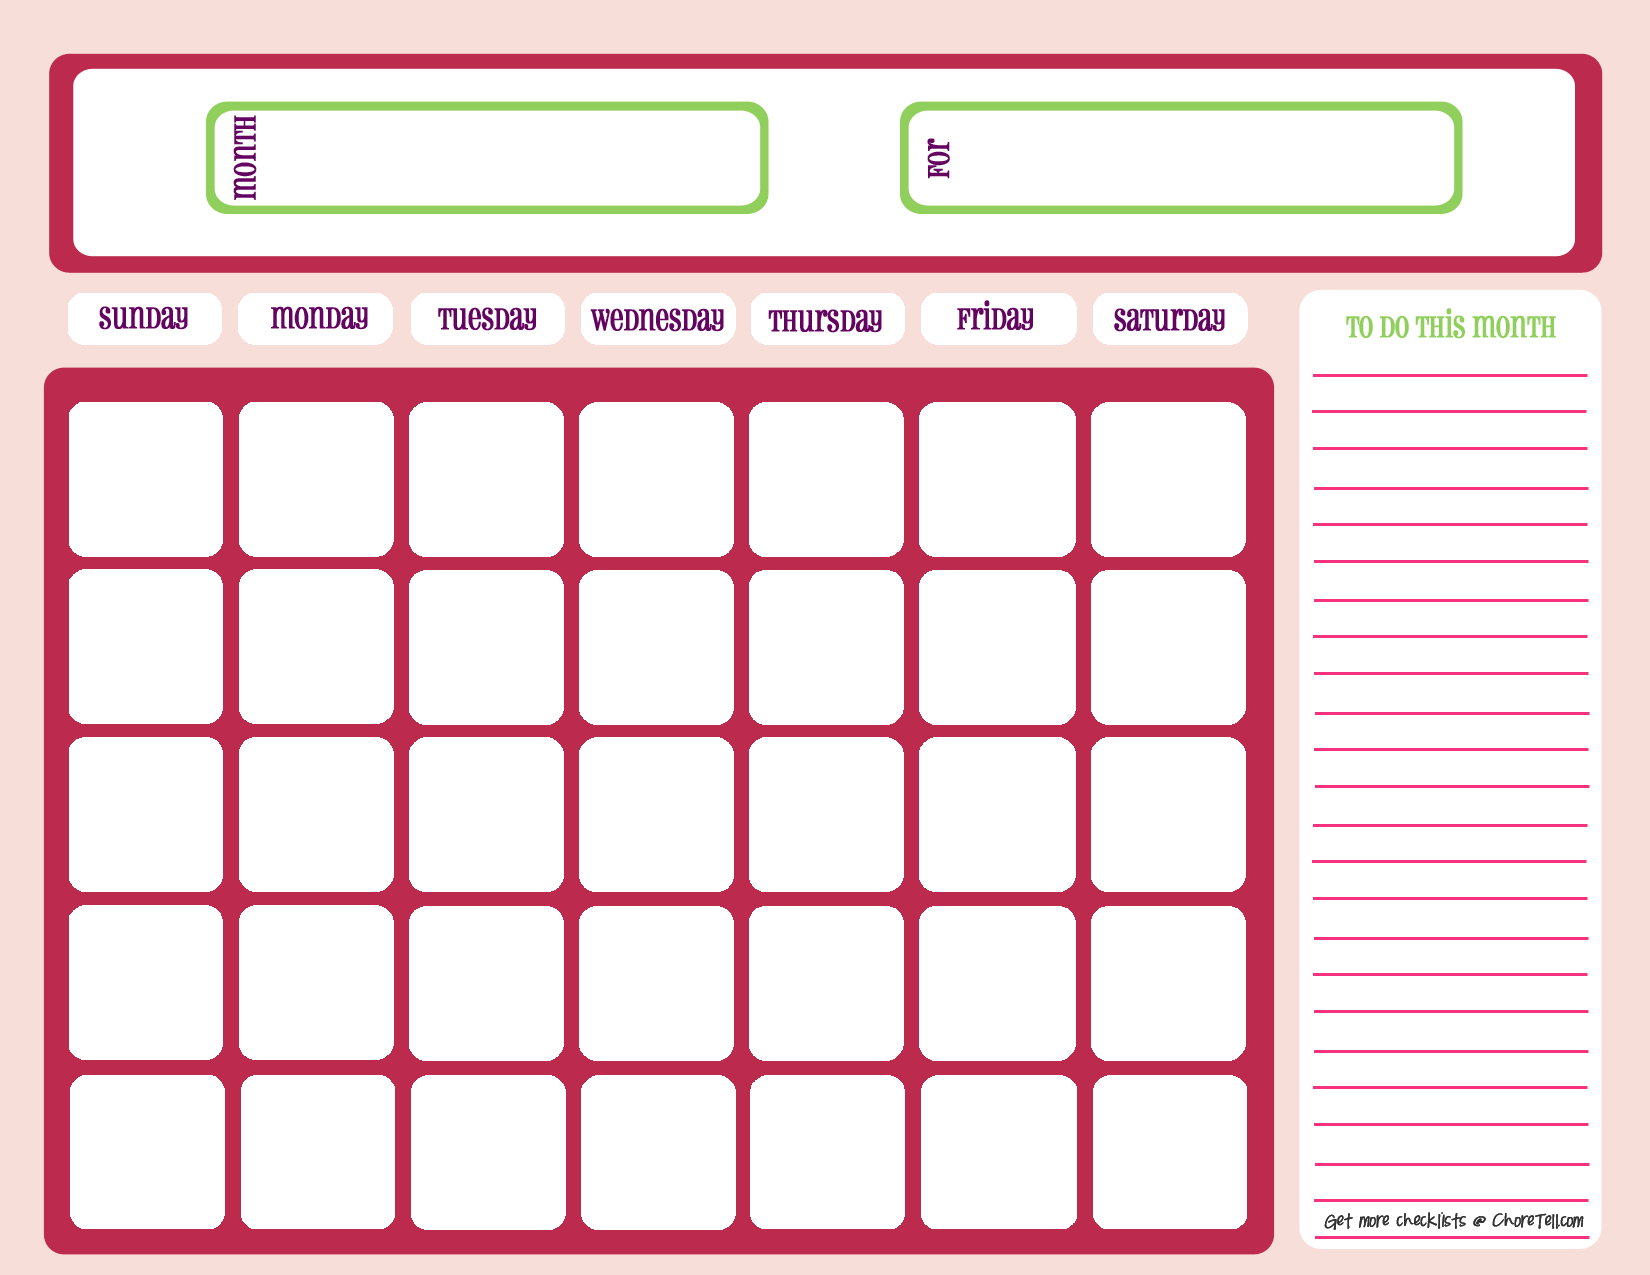 Blank Month Calendar - Pinks - Free Printable Downloads From Choretell throughout 1 Month Calendar Printable Blank